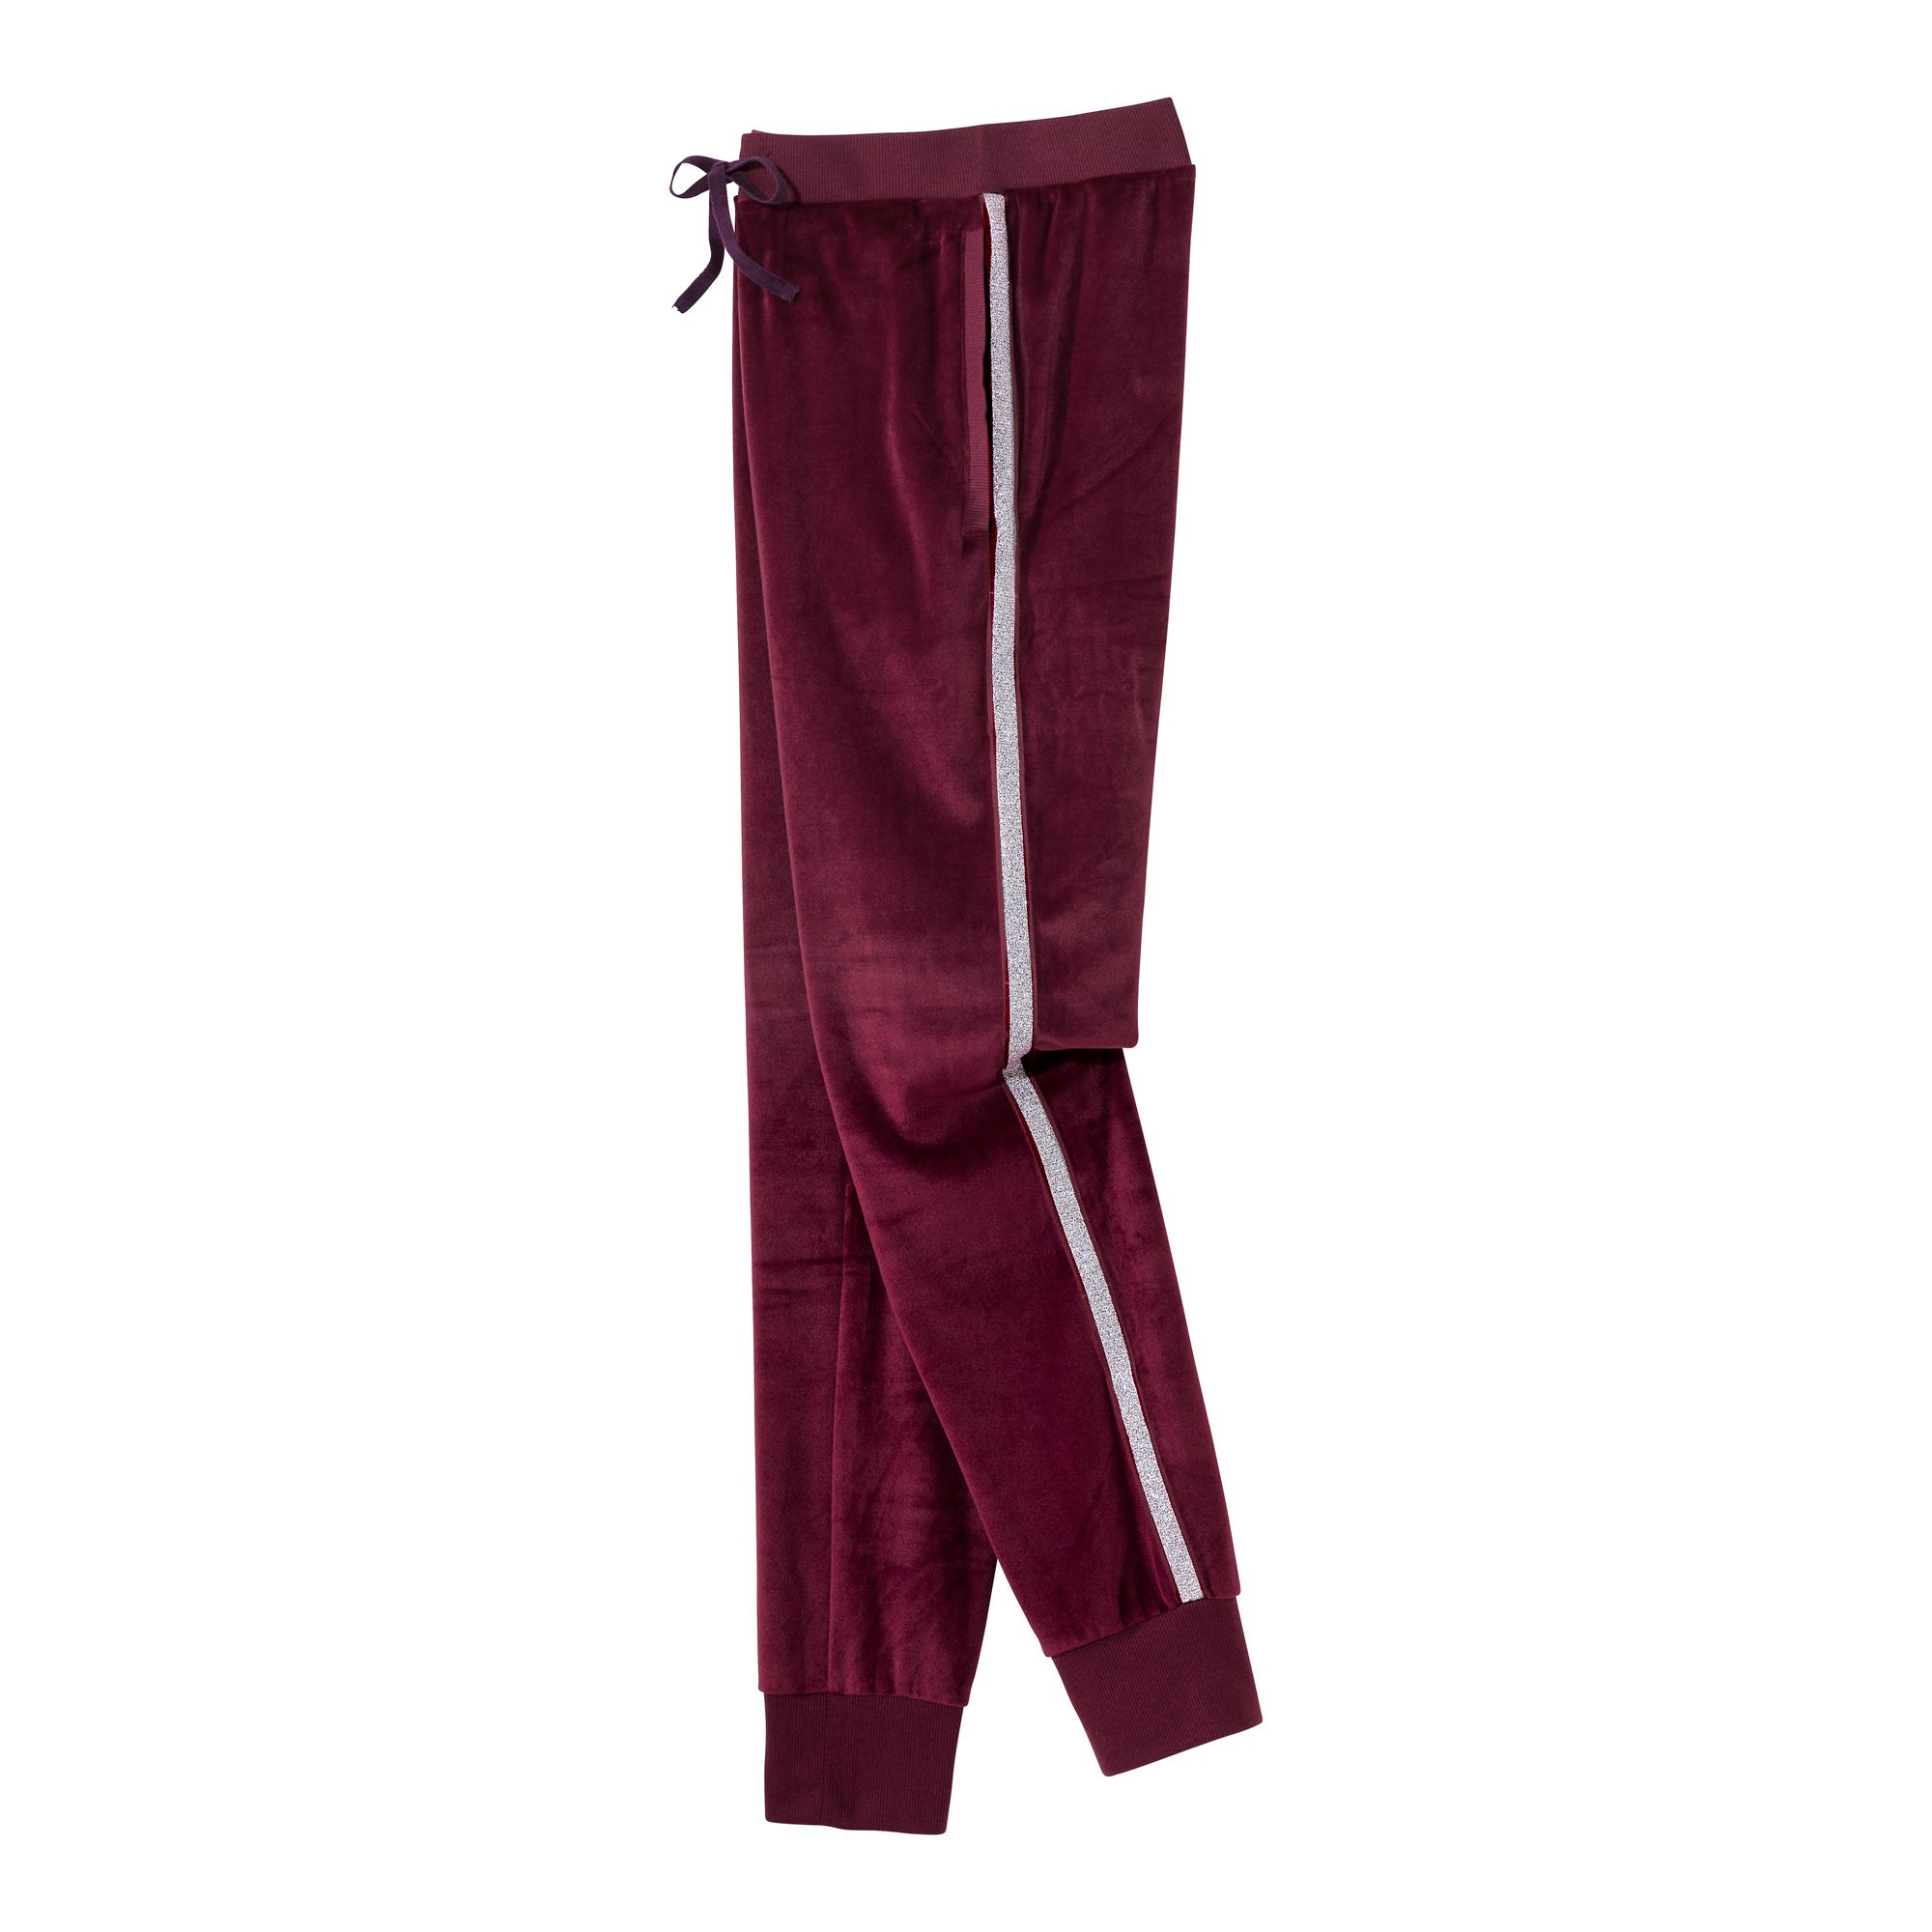 78 Bengalin Schlupfhose in 2019 | Products | Hosen, Outfit